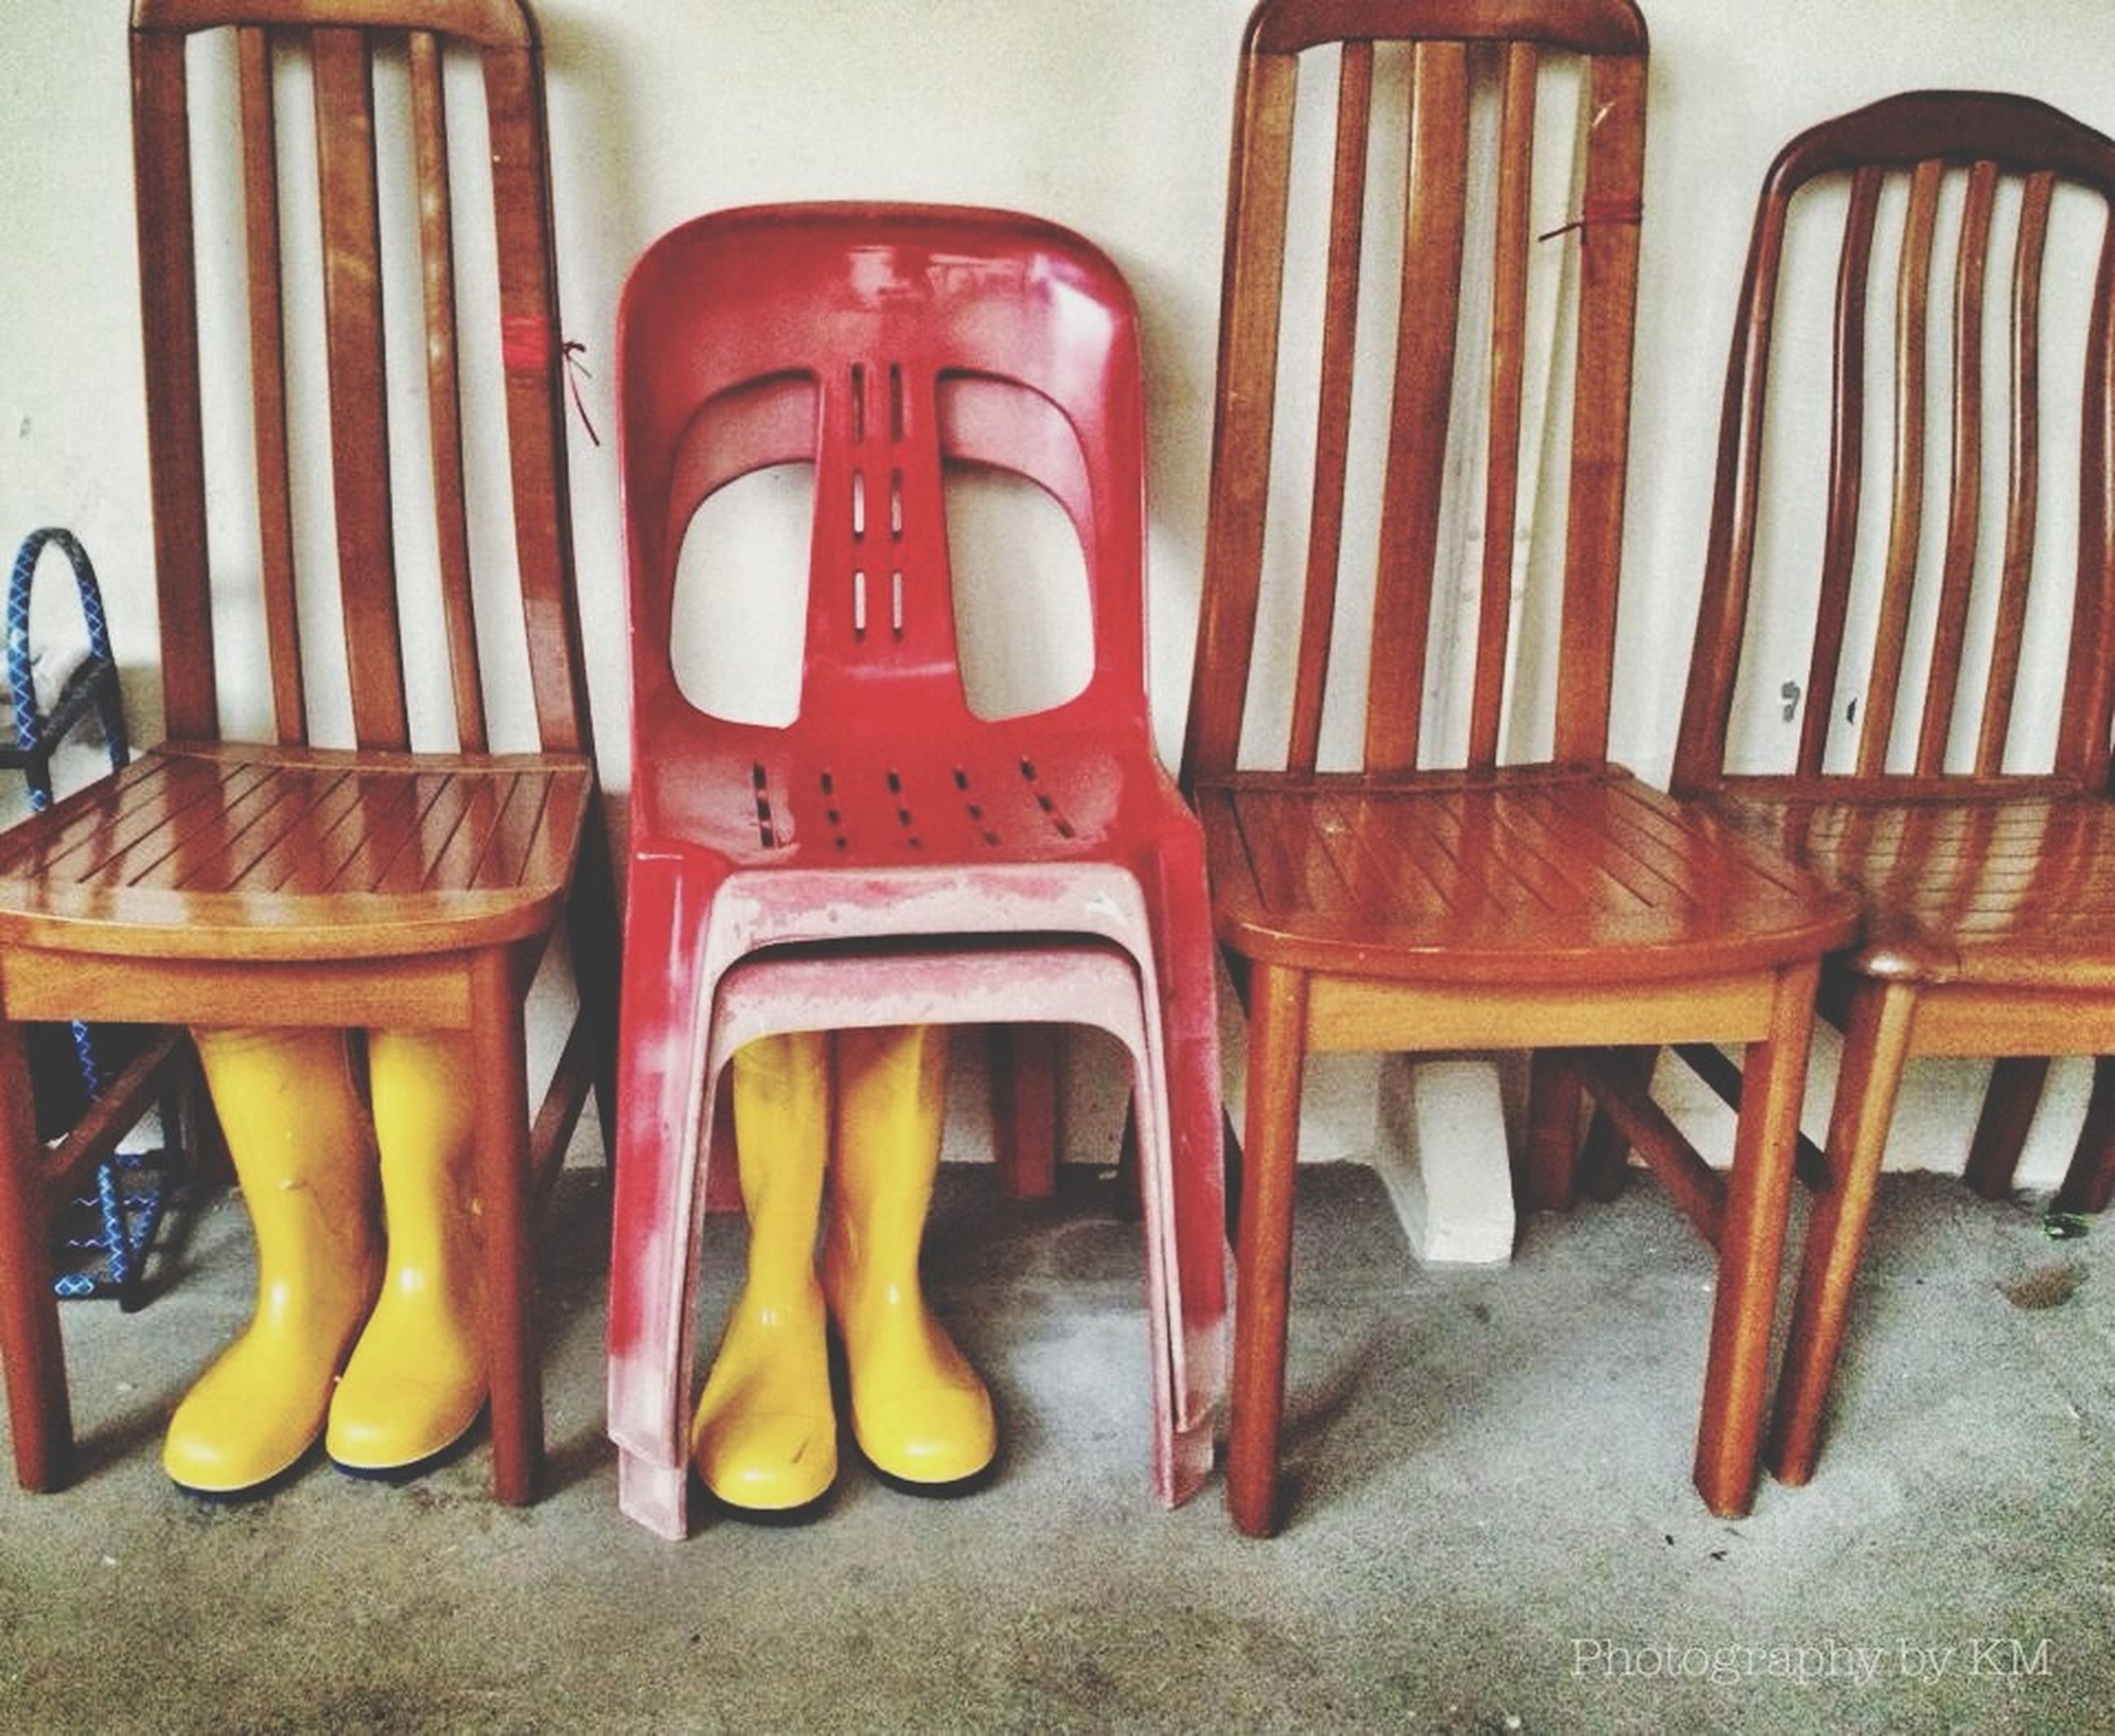 indoors, still life, table, chair, absence, empty, variation, high angle view, no people, group of objects, choice, furniture, seat, arrangement, large group of objects, side by side, plastic, stack, wood - material, close-up